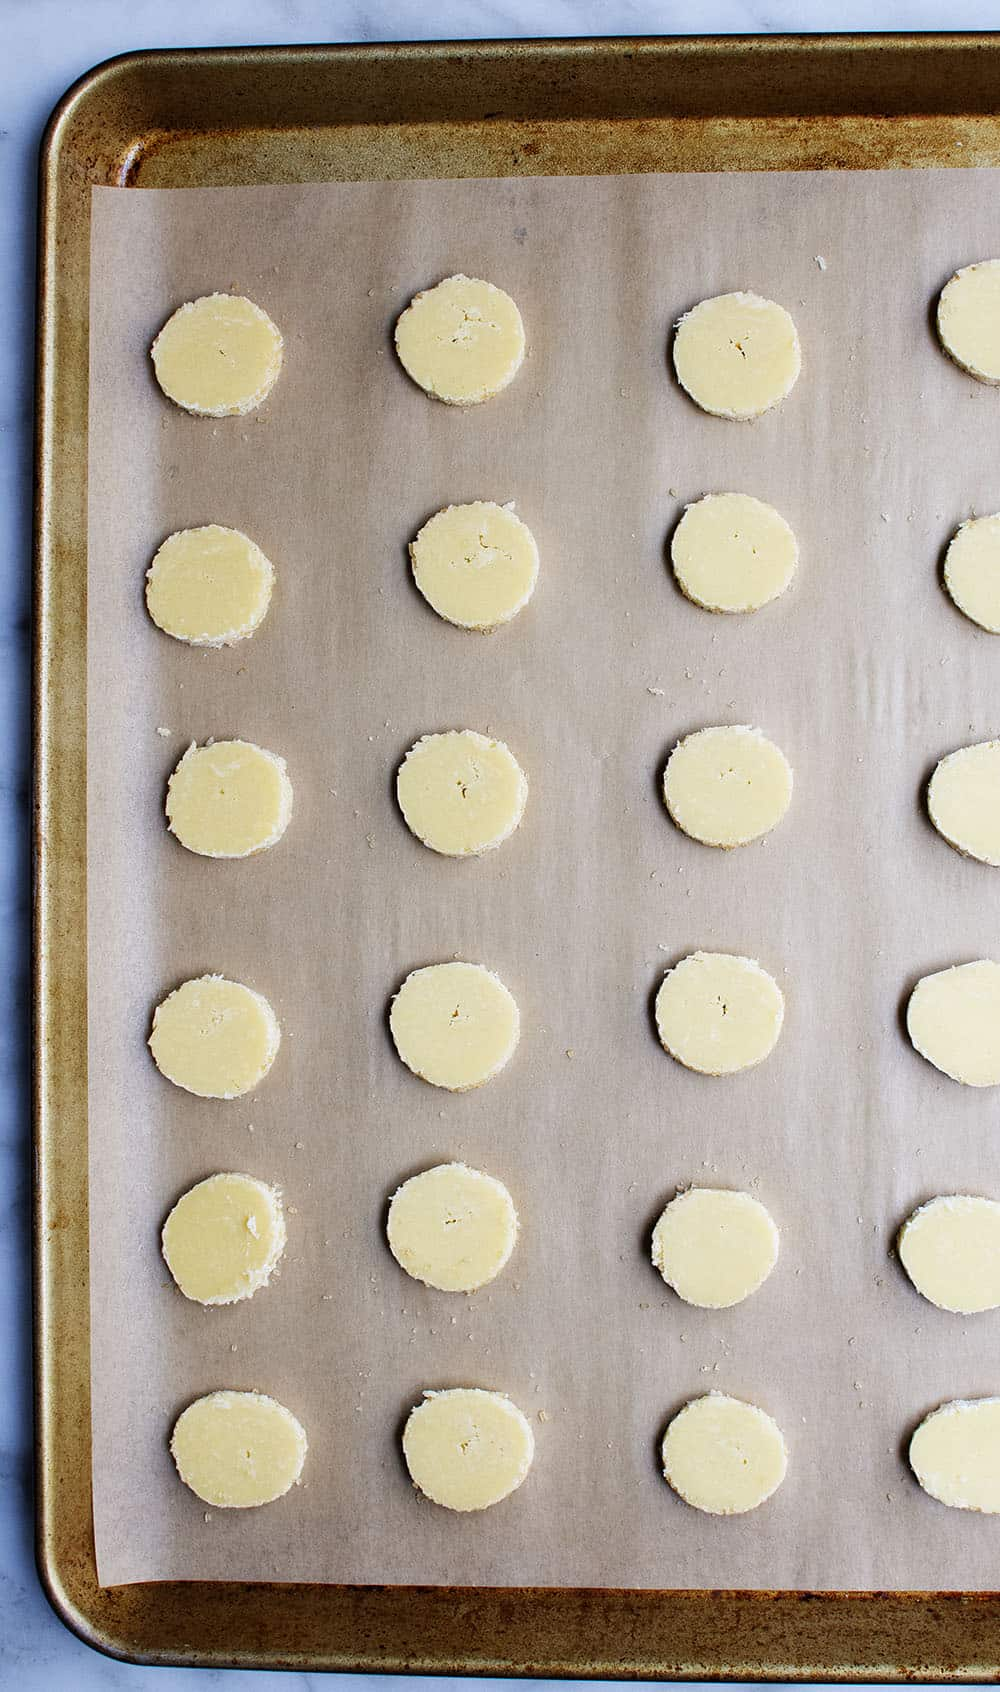 butter cookie dough rounds ready to bake